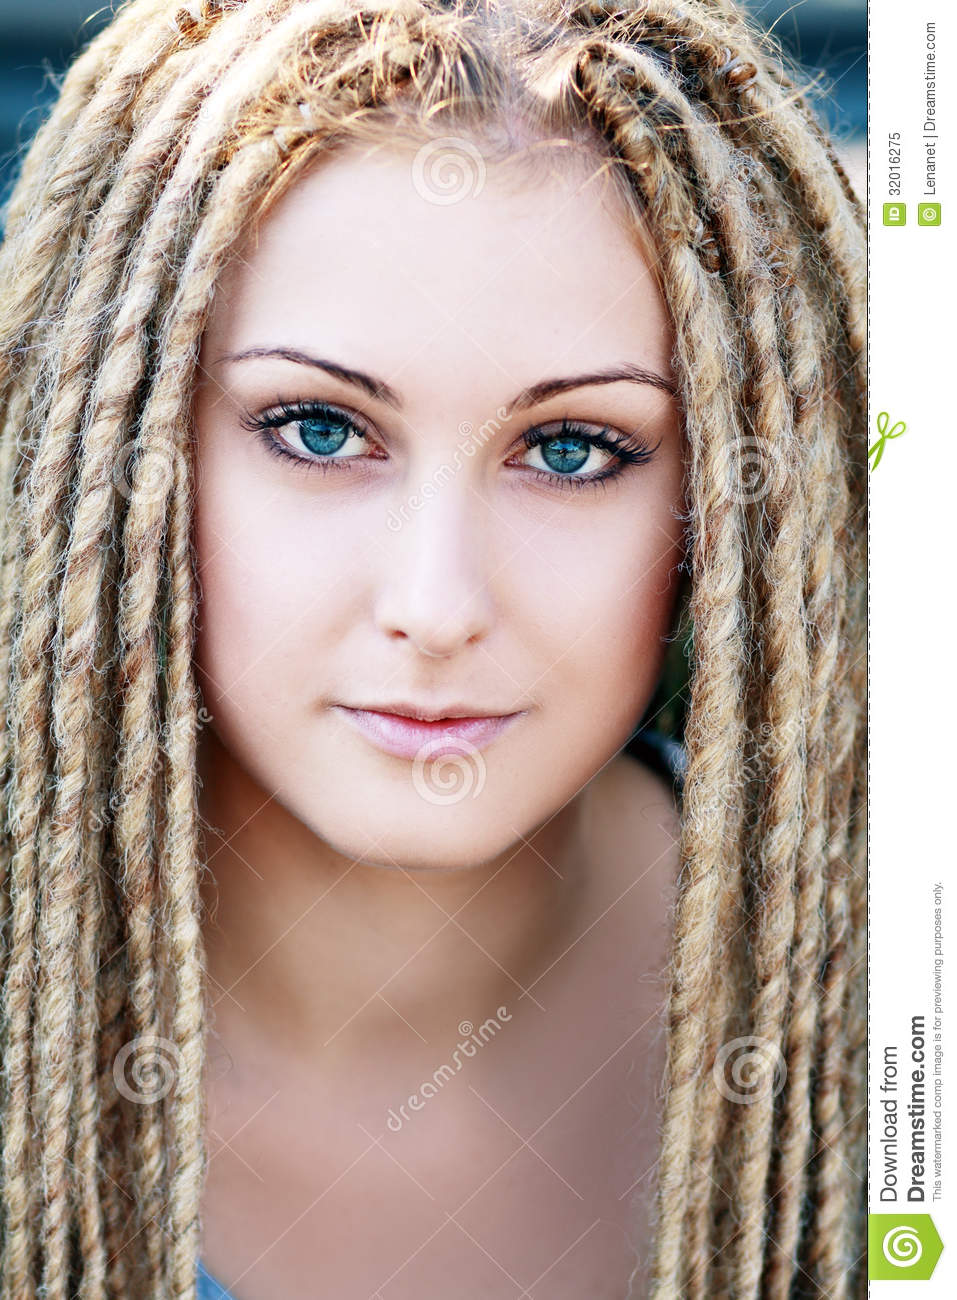 Fashion Hairstyle With Dreads Stock Image - Image of